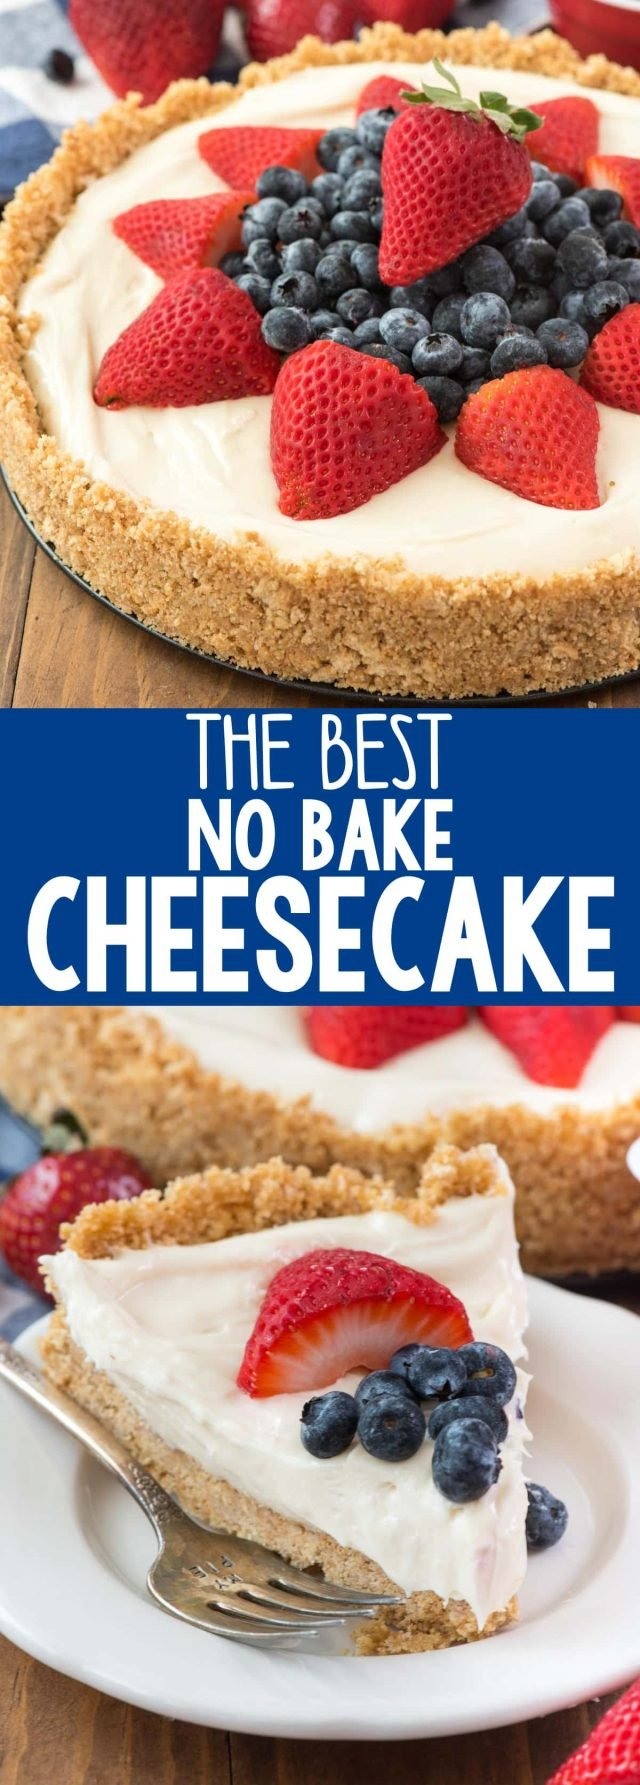 This Is The Best No Bake Cheesecake Recipe Ever It S Got A Thick Graham Cracker